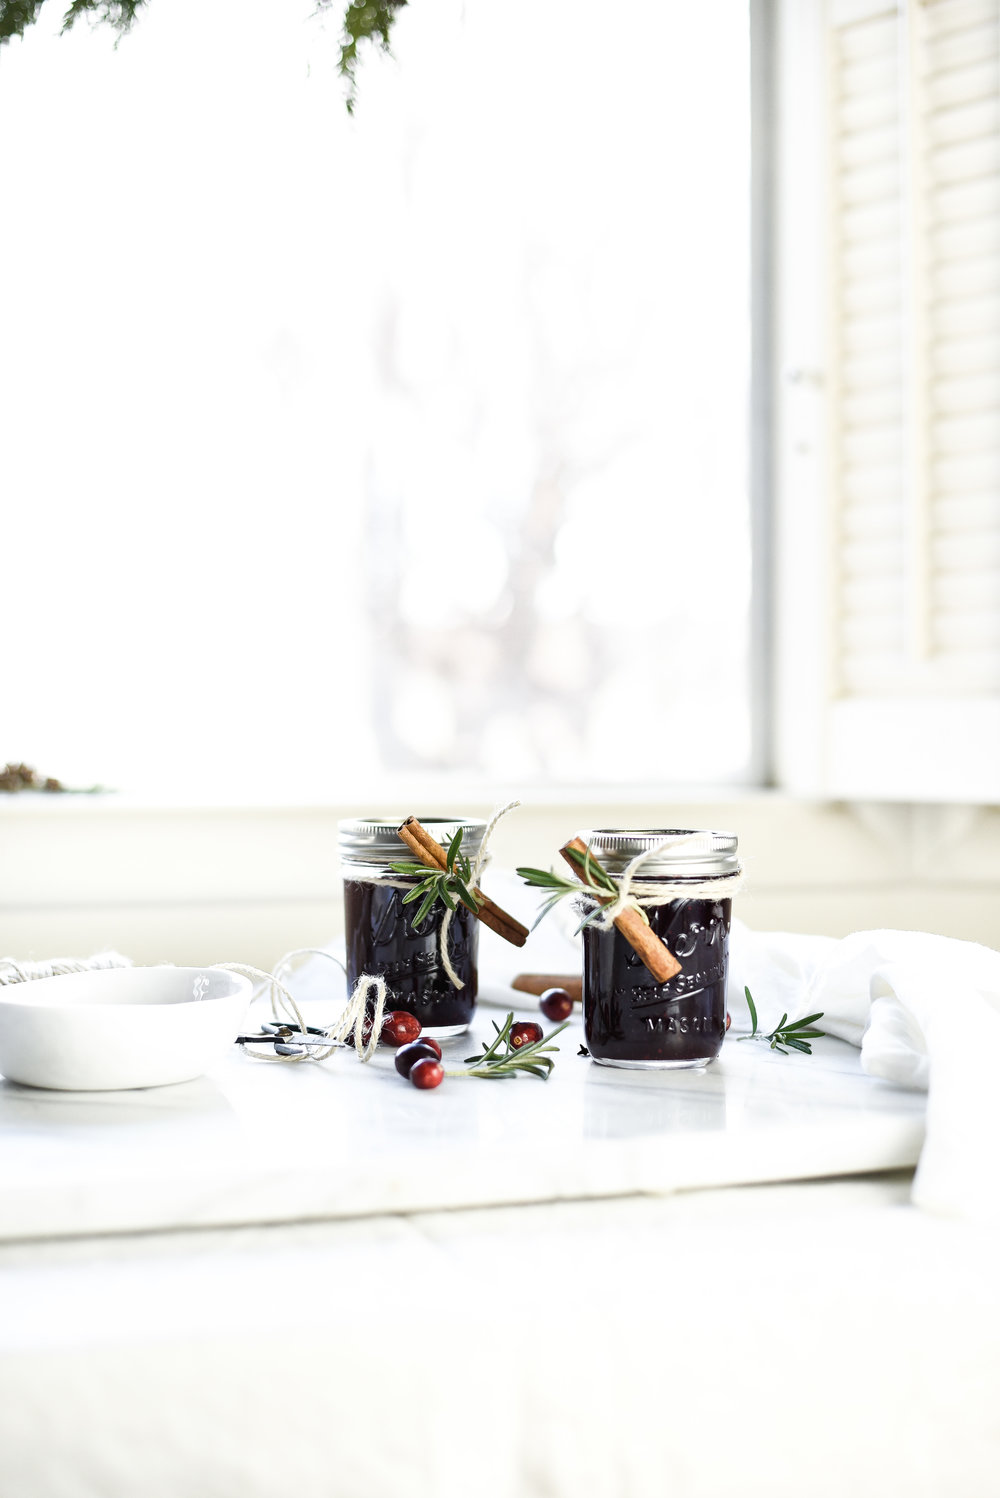 Homemade Spiced Cranberry Jam Preserves with Rosemary and Cinnamon